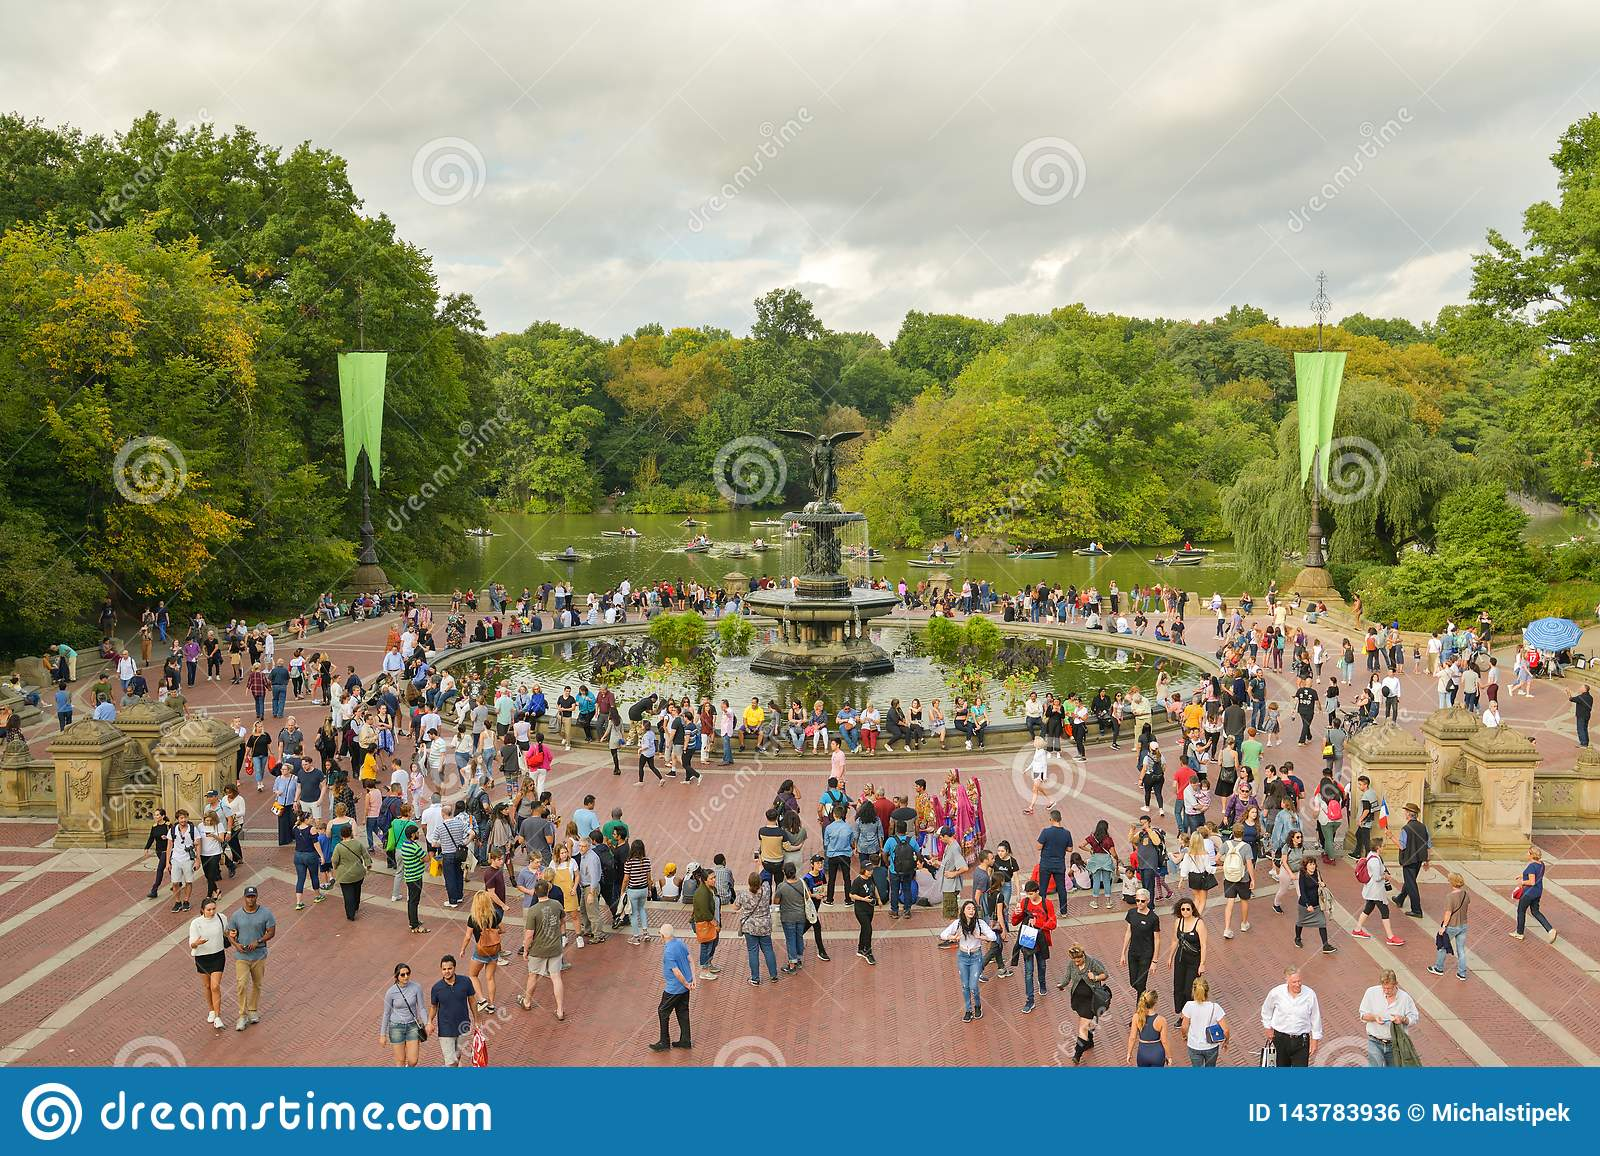 Overcrowded Bethesda Terrace in Central Park, New York City